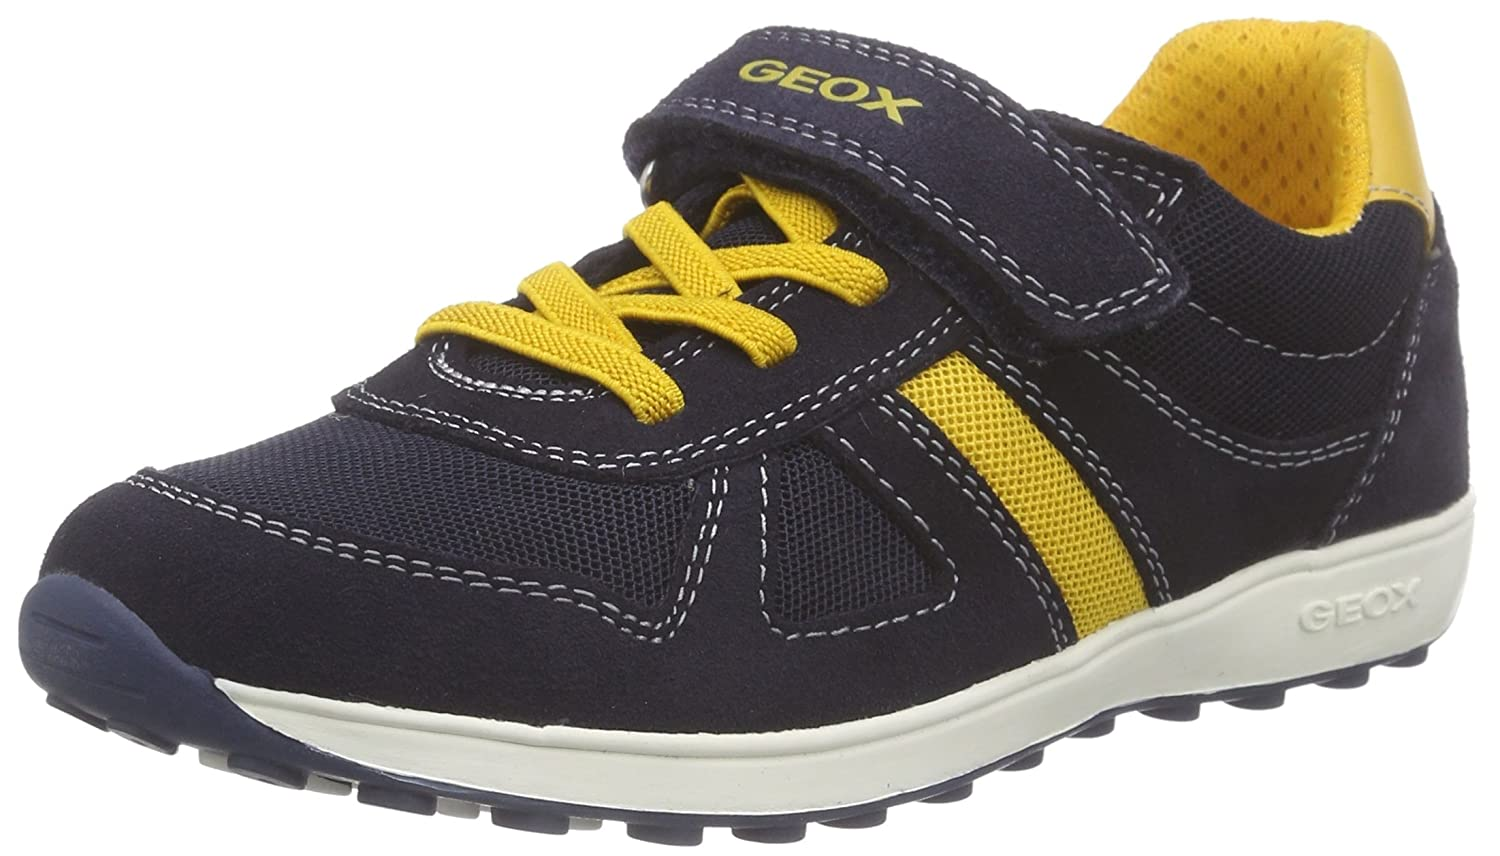 Mode Kinder Schuhe GEOX Sneaker JR. BOY XITIZEN A blau